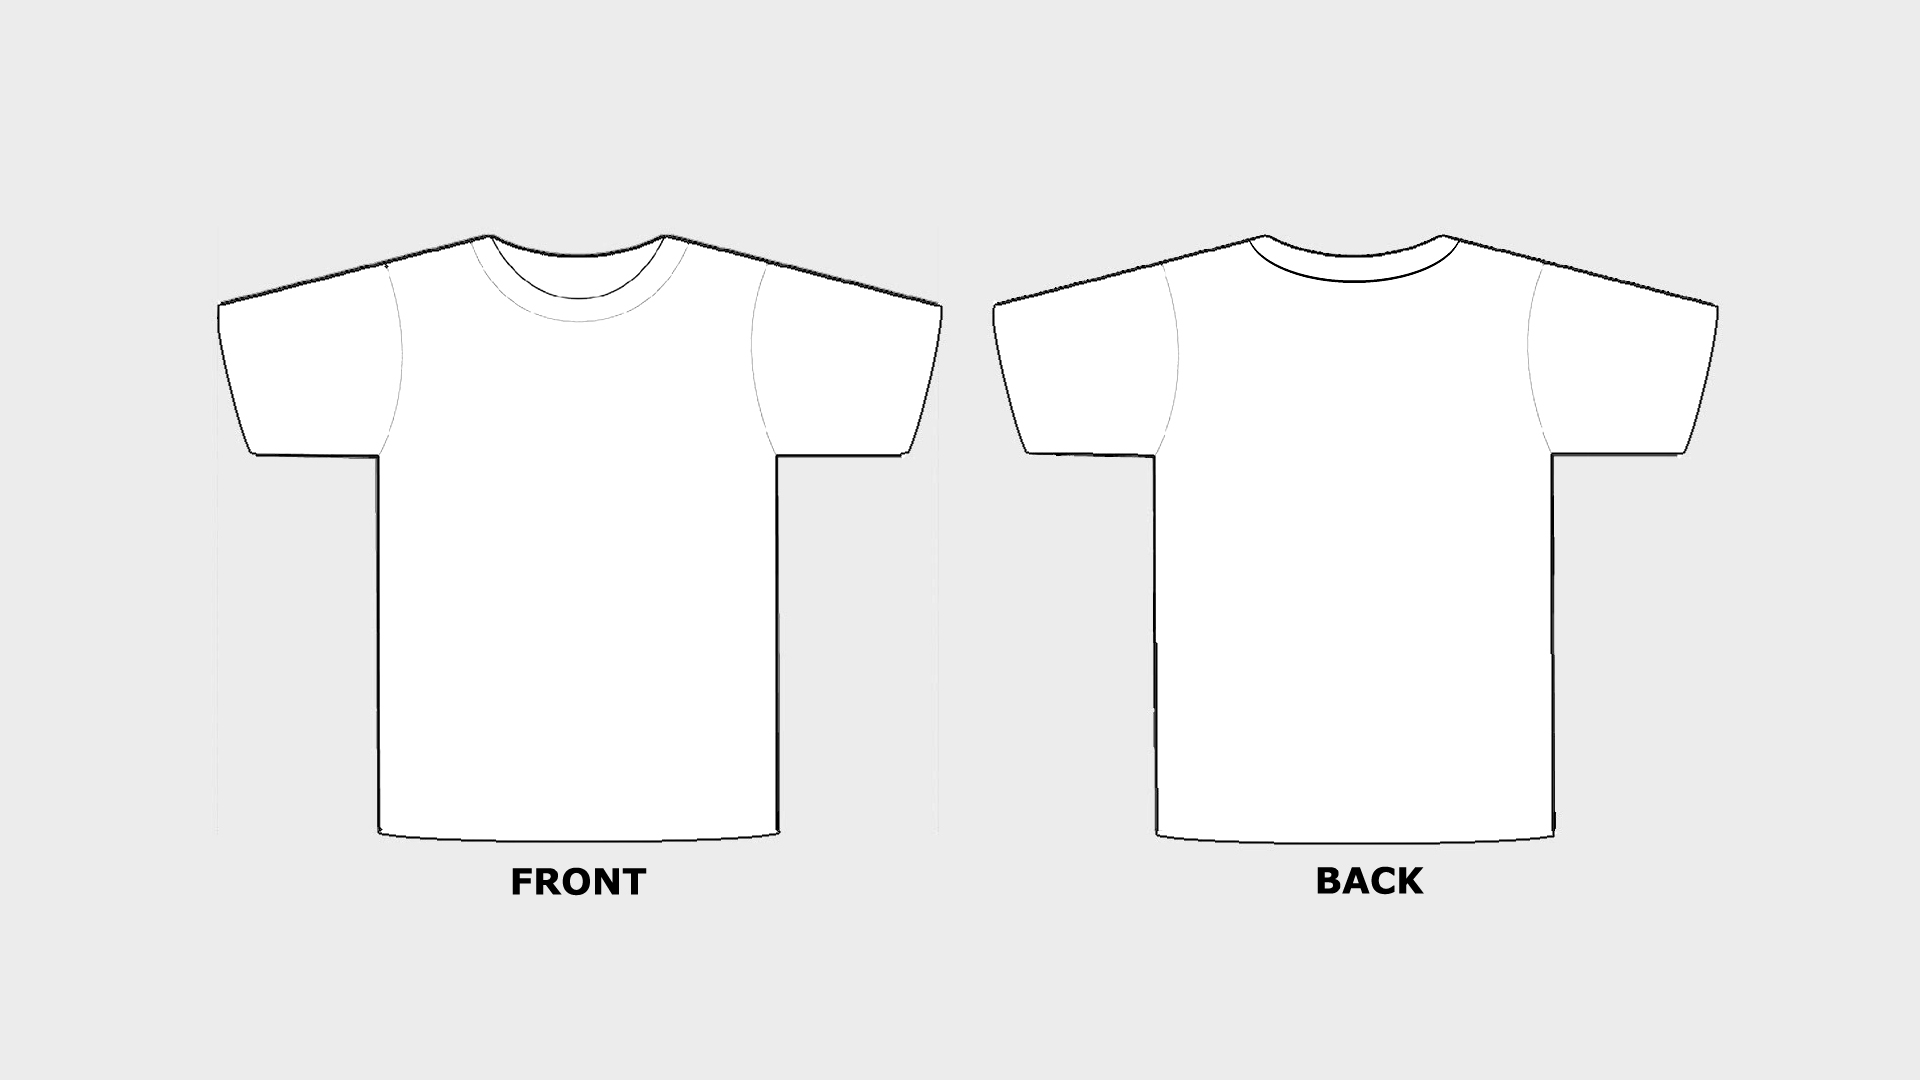 Blank Tshirt Template Printable In Hd